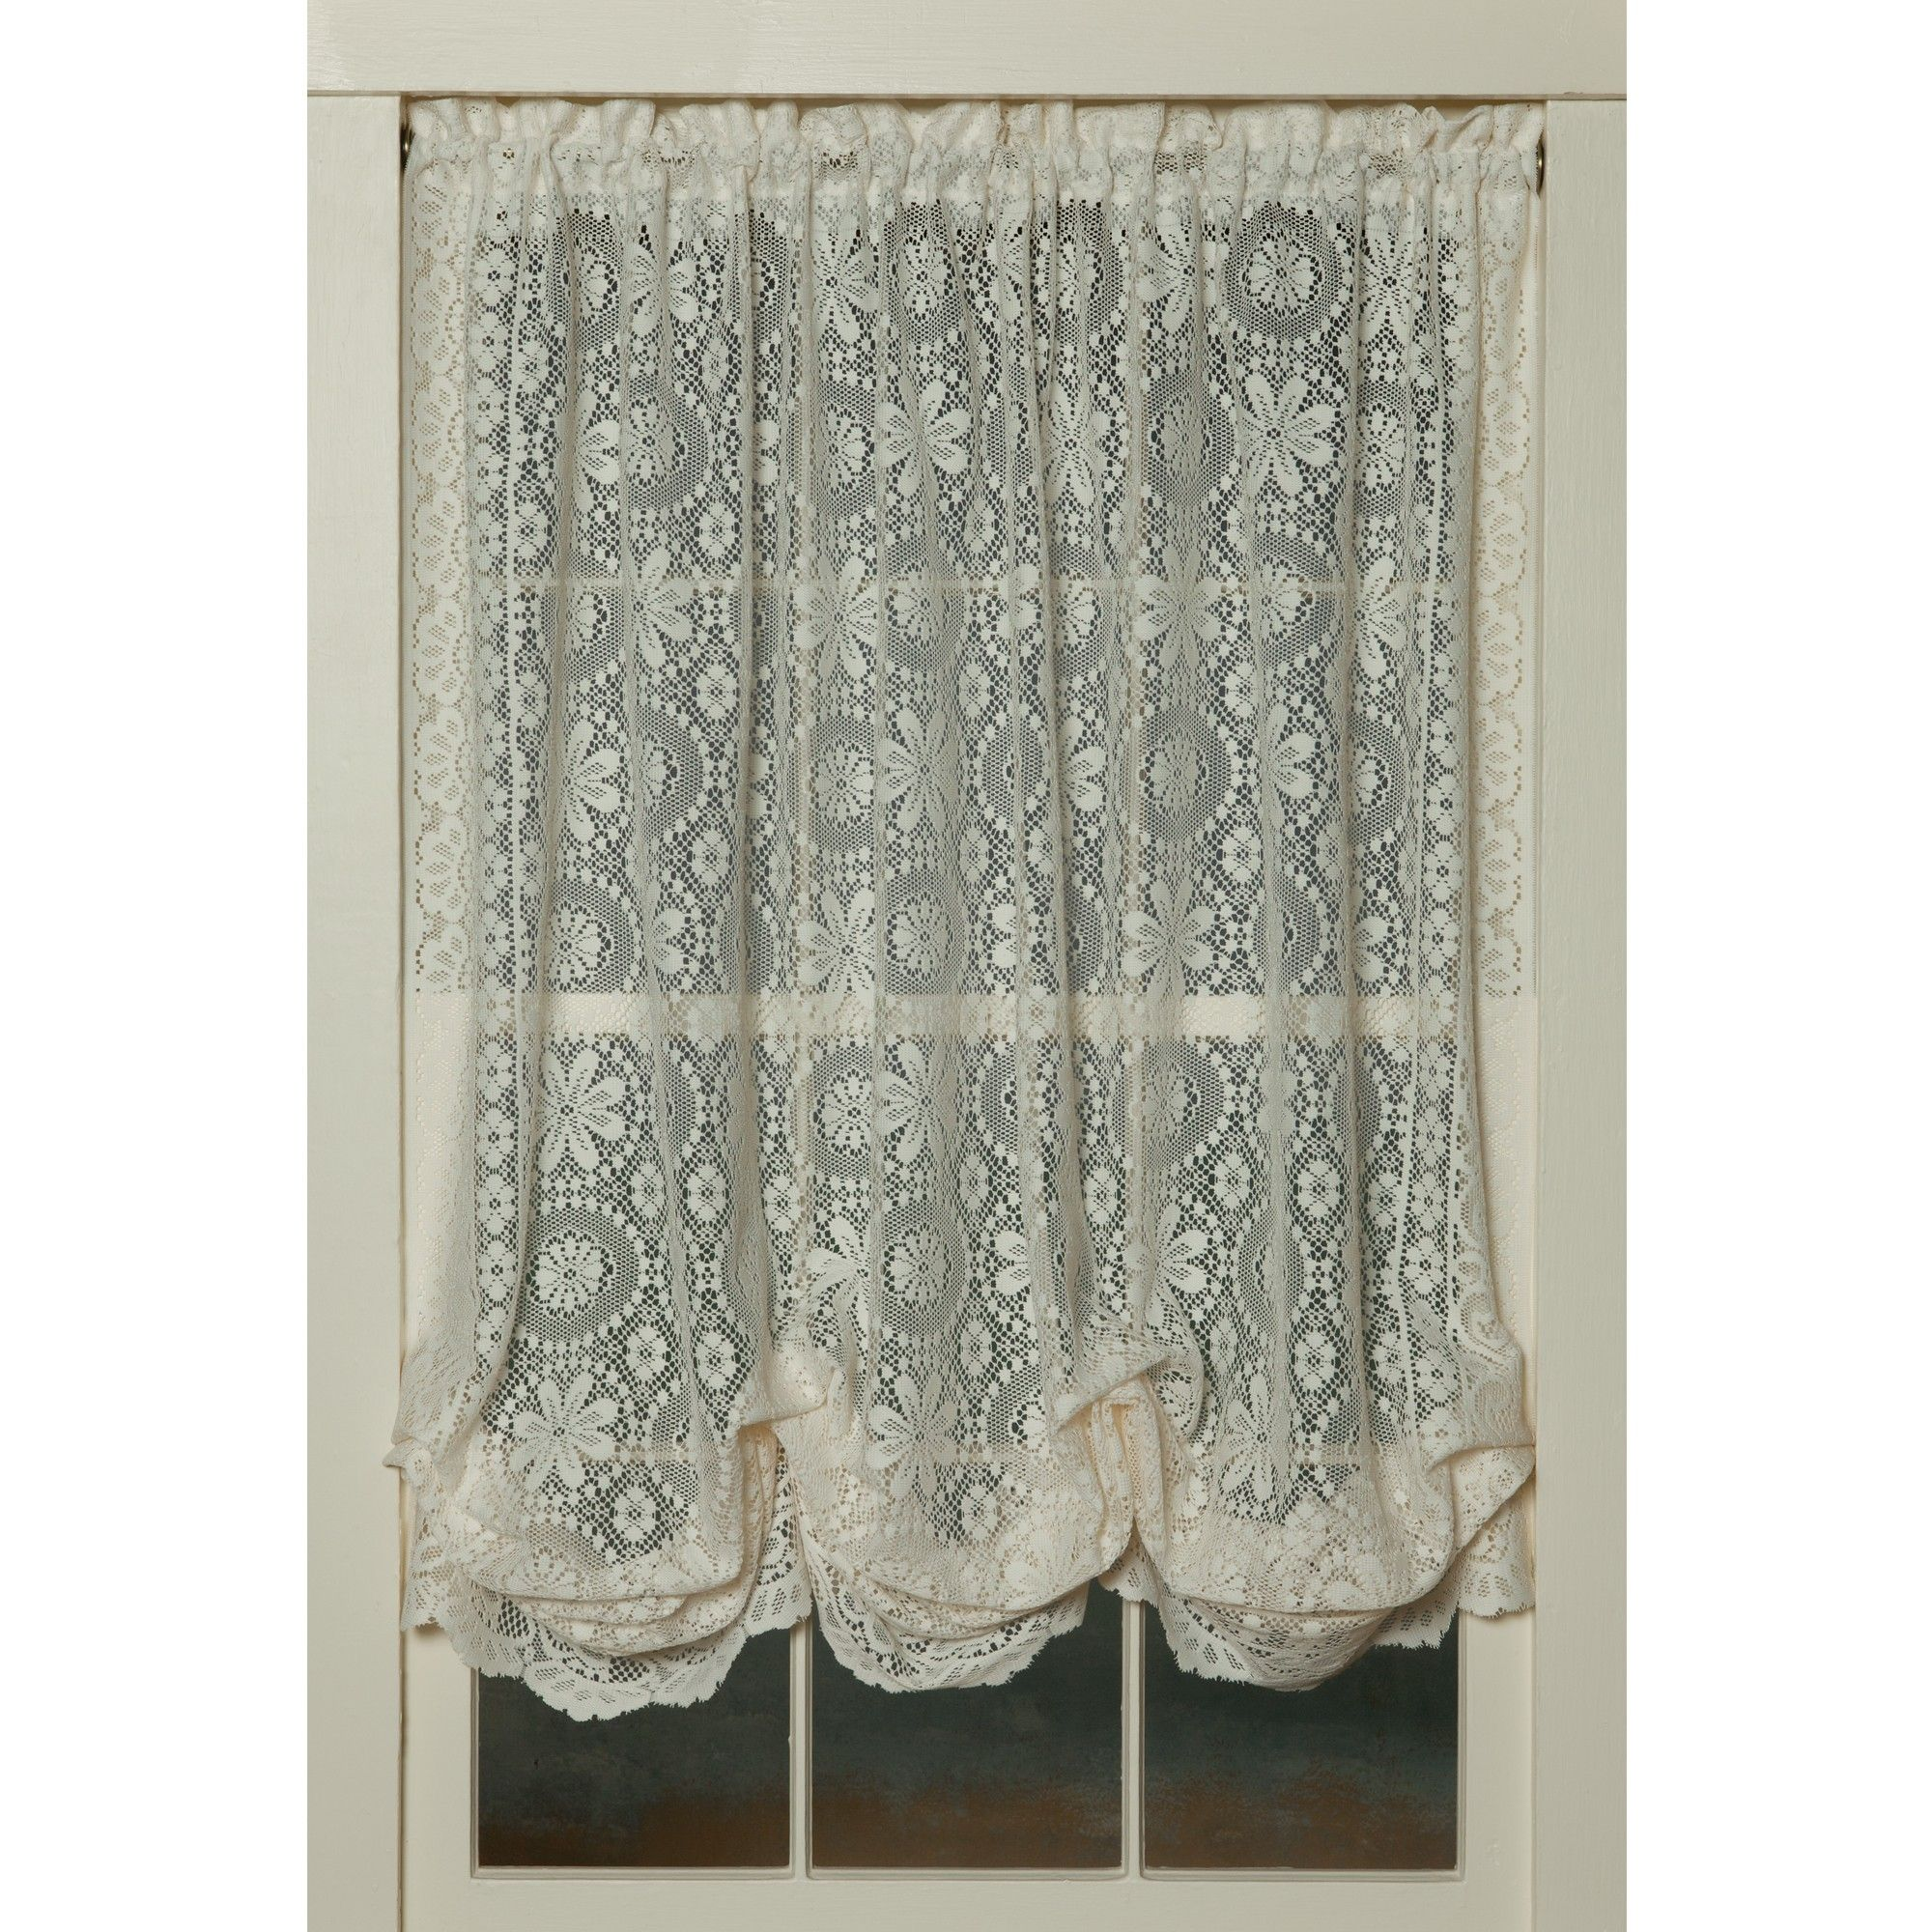 Austrian curtains: a workshop on sewing 31